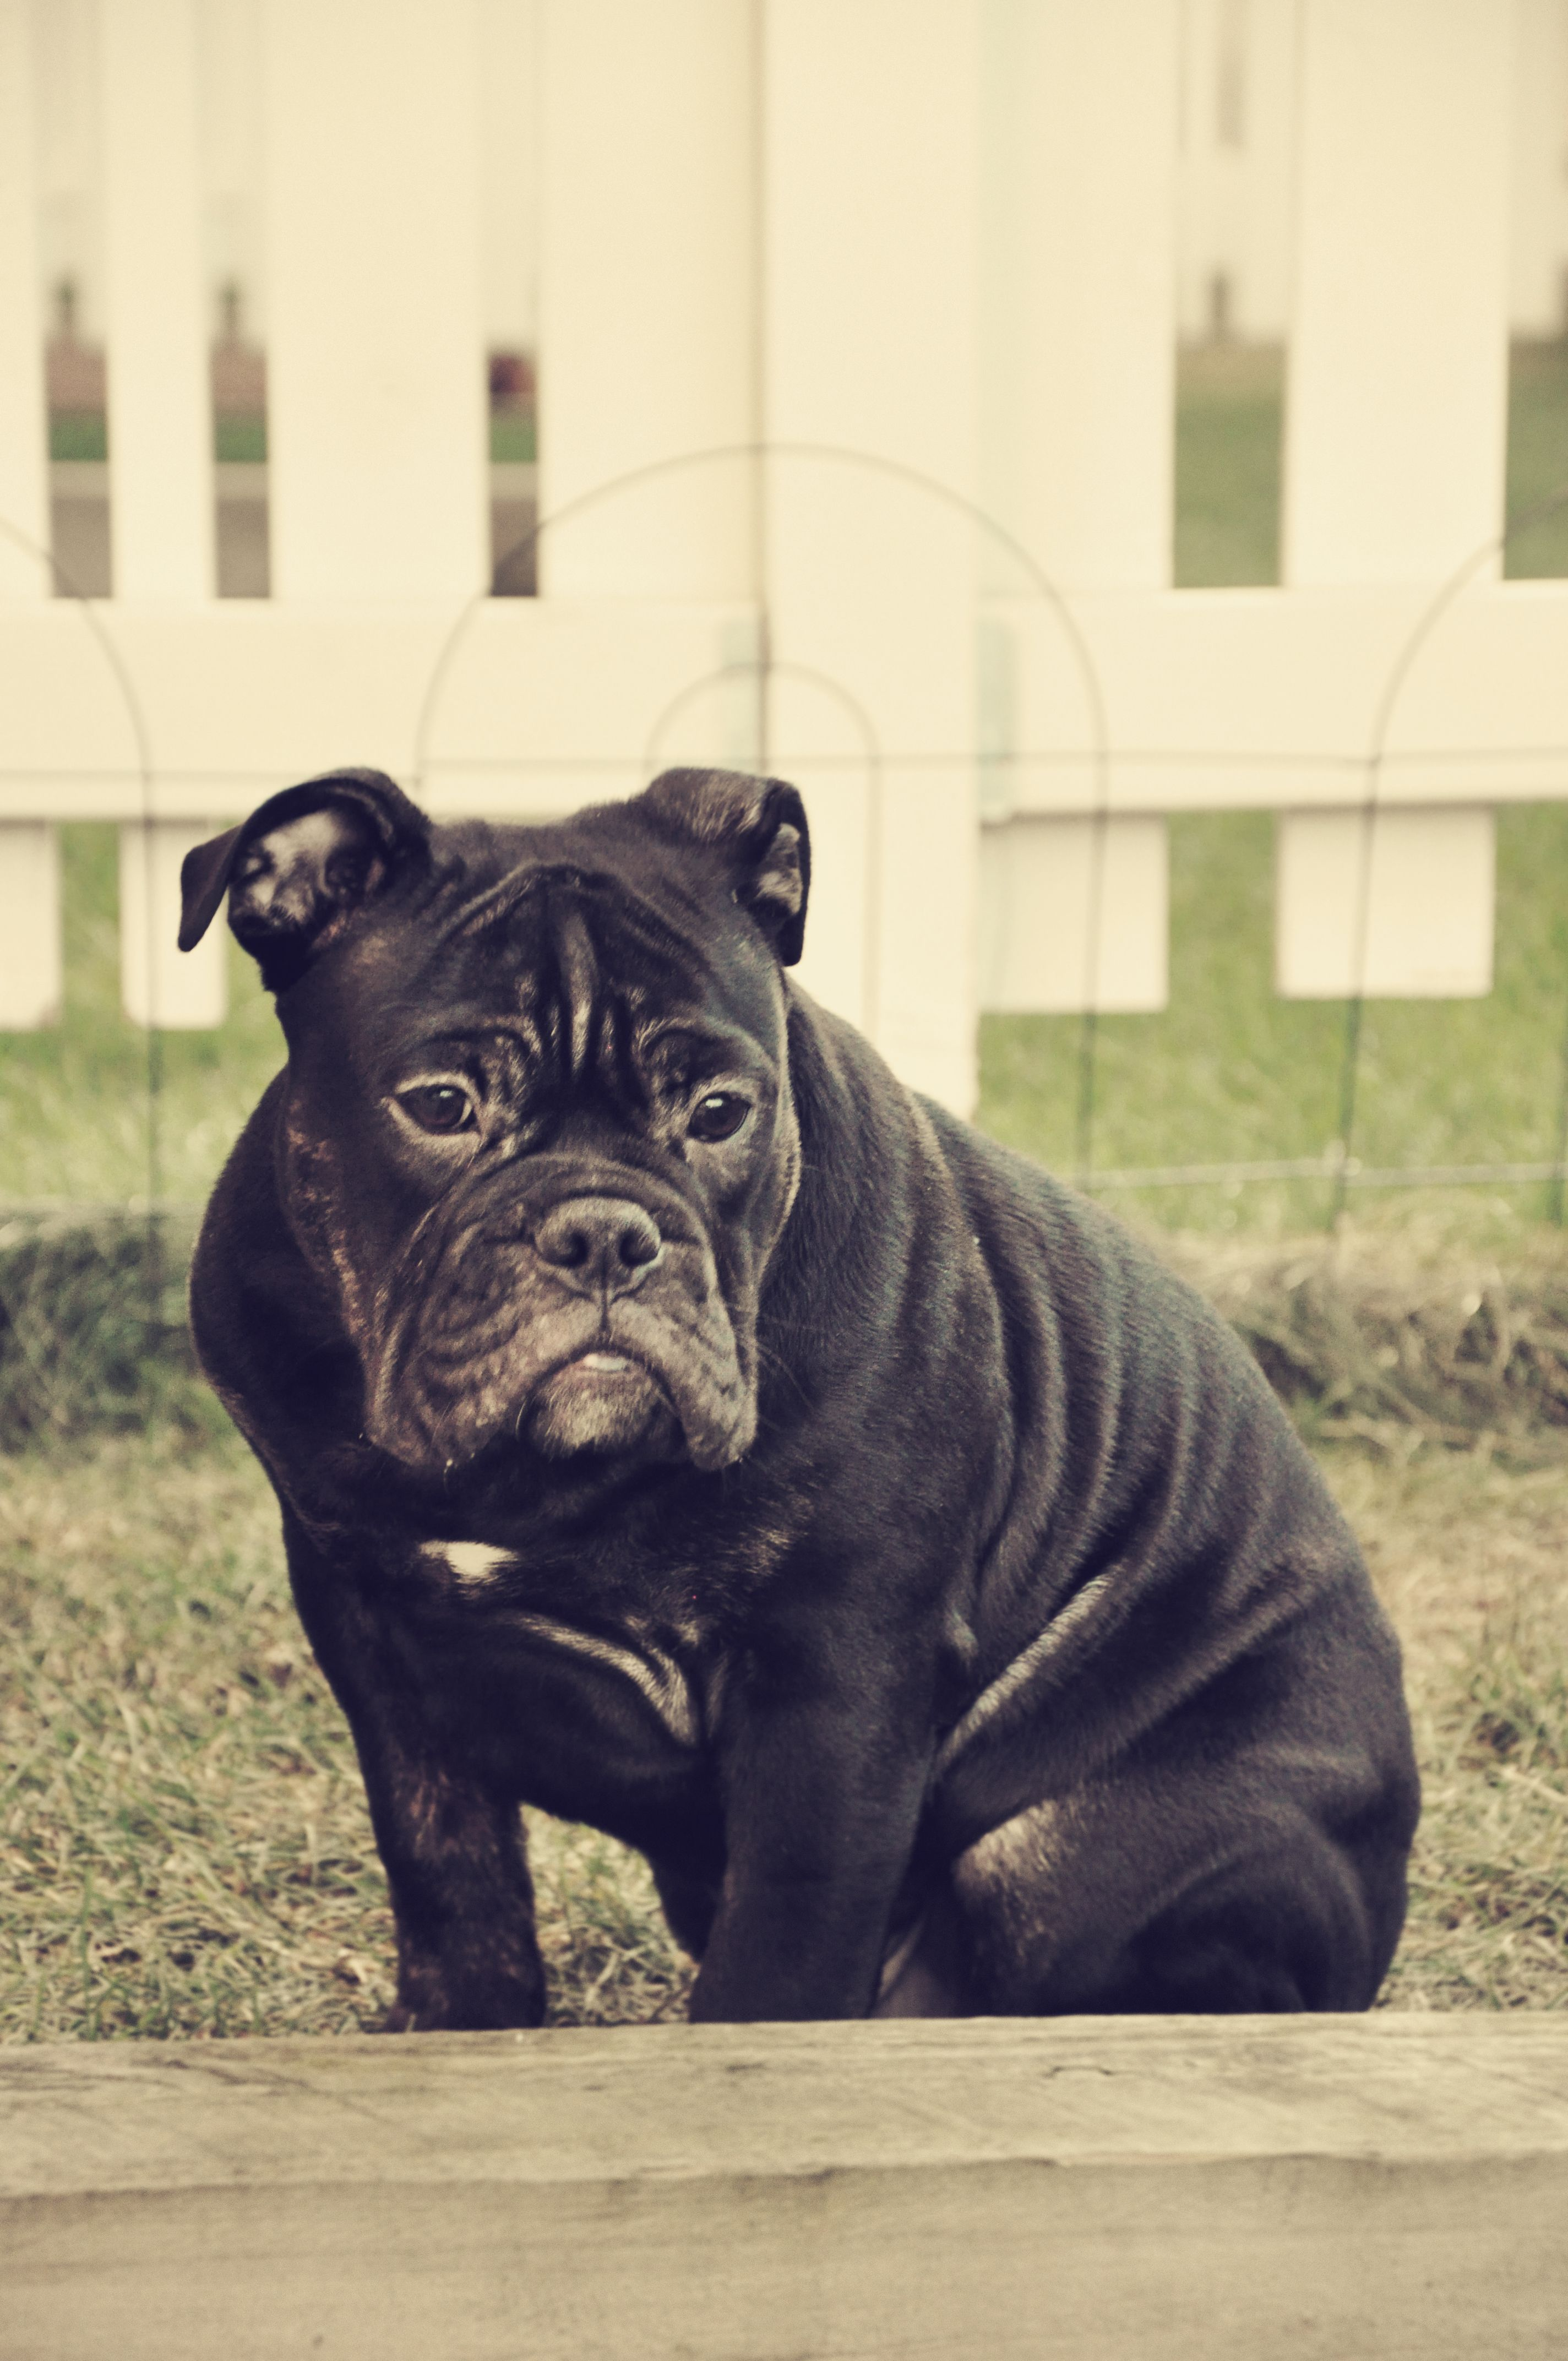 5 5 Months Old Olde English Bulldogge 5 Month Olds Bulldog Dogs